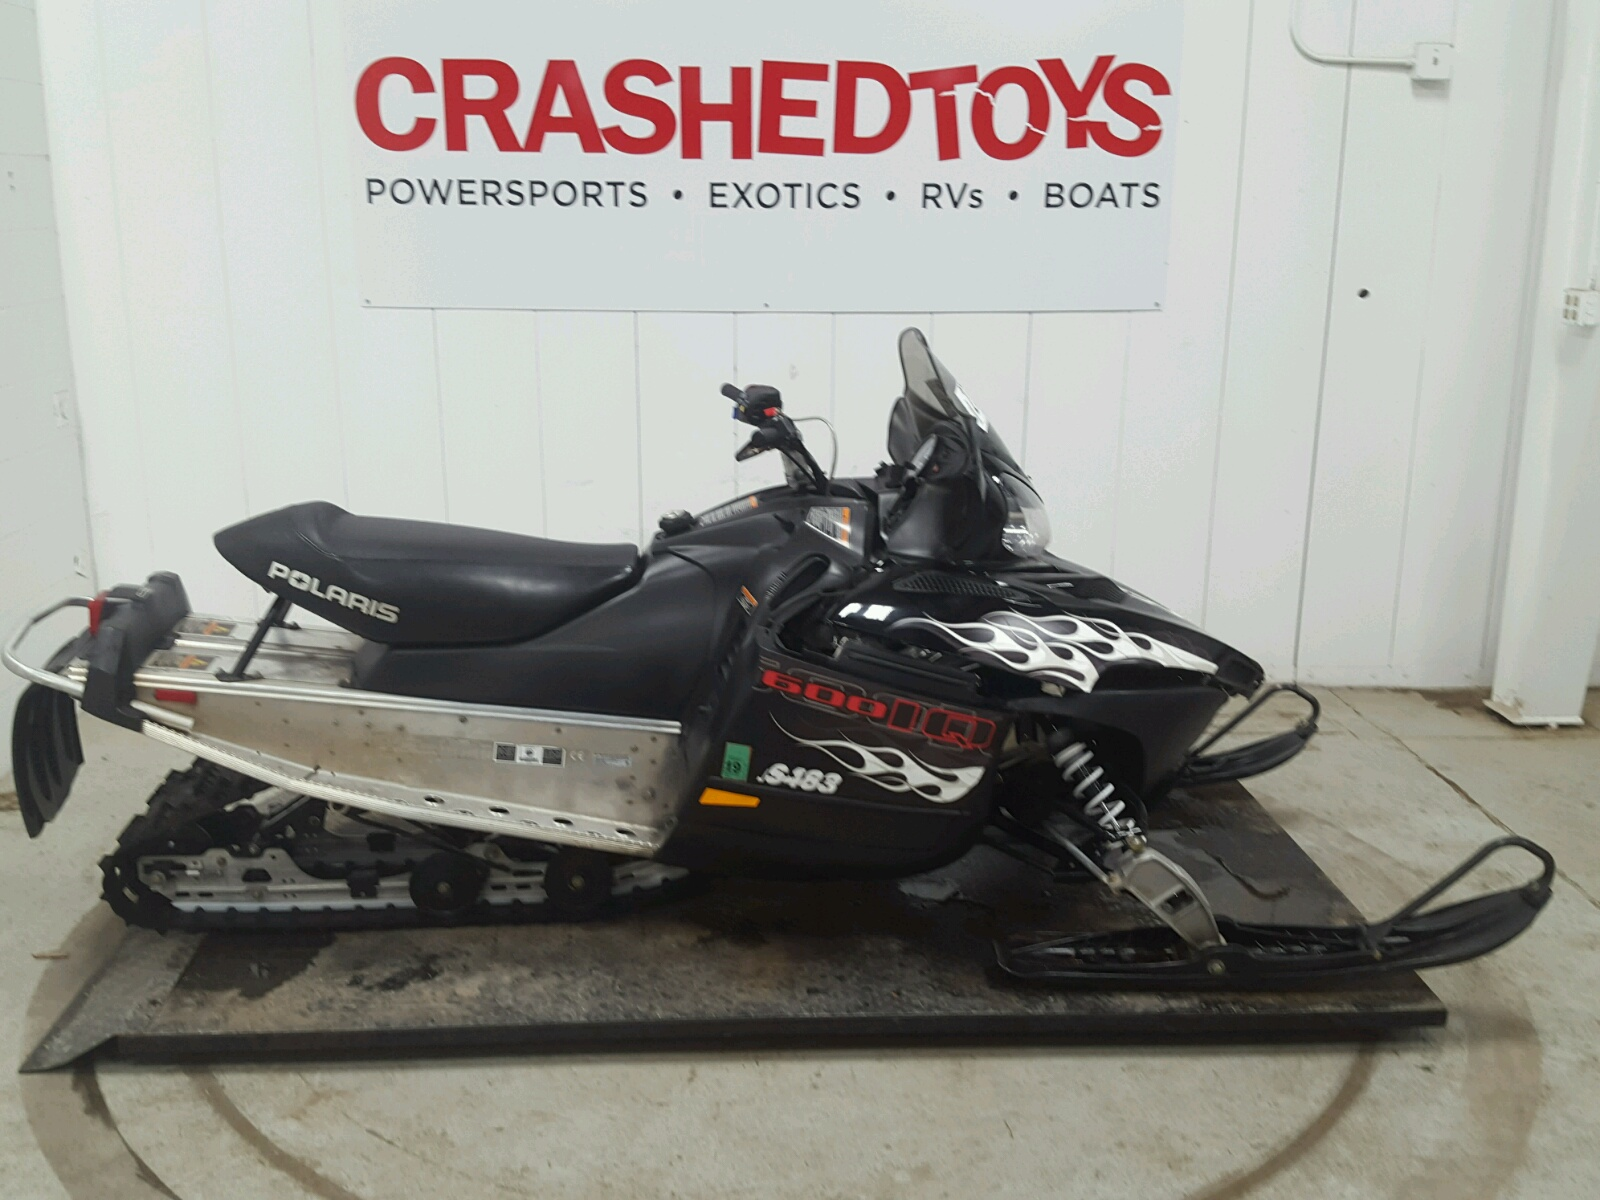 Salvage 2009 Polaris 600 IQ SHI for sale